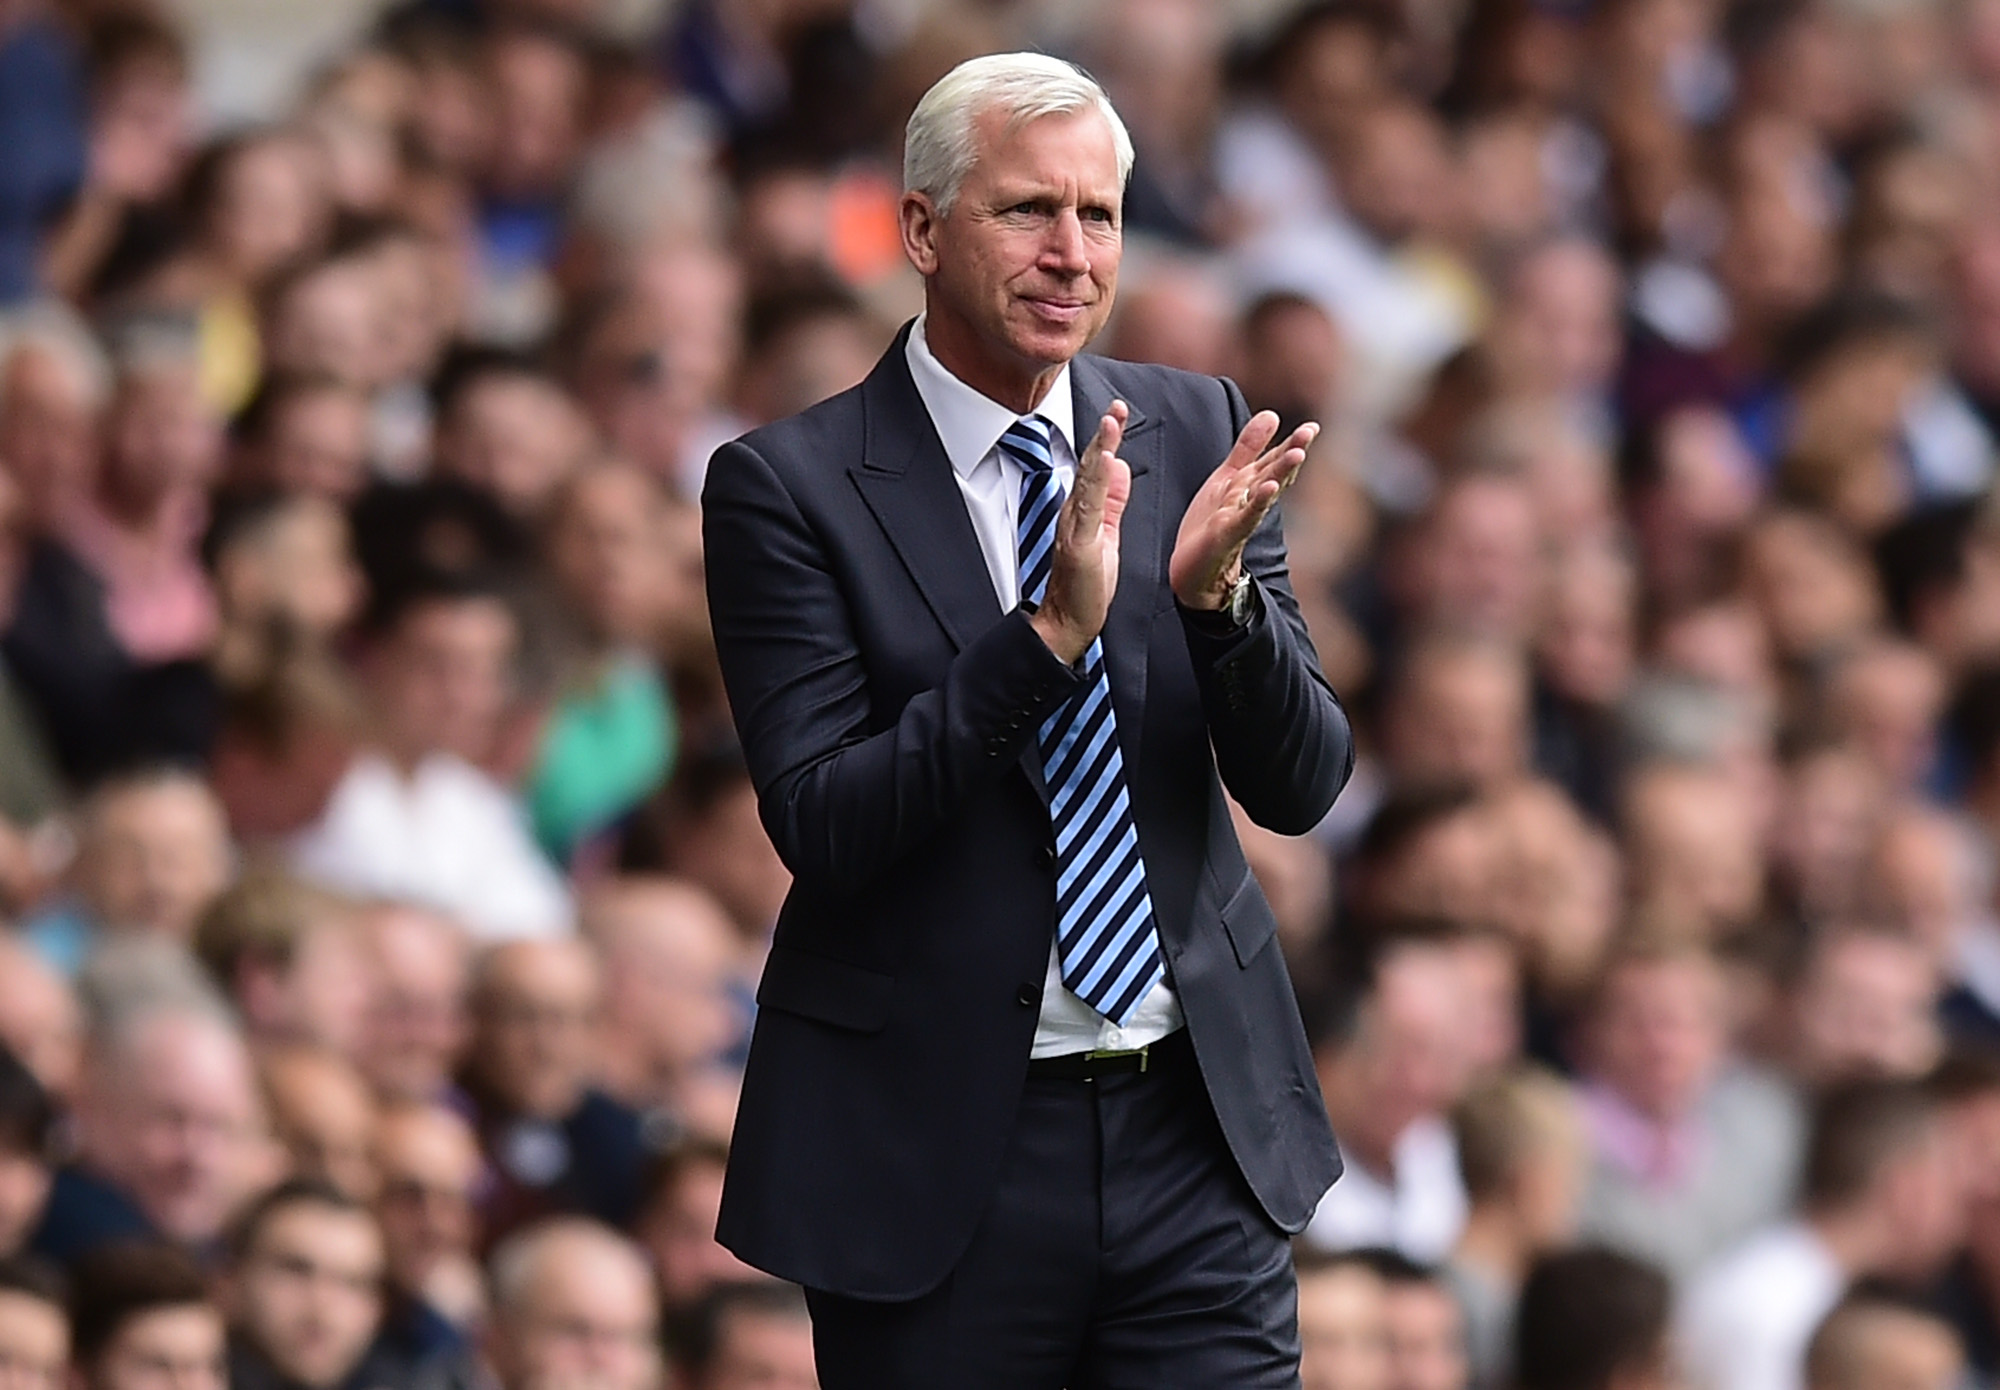 LONDON, ENGLAND - AUGUST 20: Alan Pardew, manager of Crystal Palace, looks on during the Premier League match between Tottenham Hotspur and Crystal Palace at White Hart Lane on August 20, 2016 in London, England. (Photo by Alex Broadway/Getty Images)